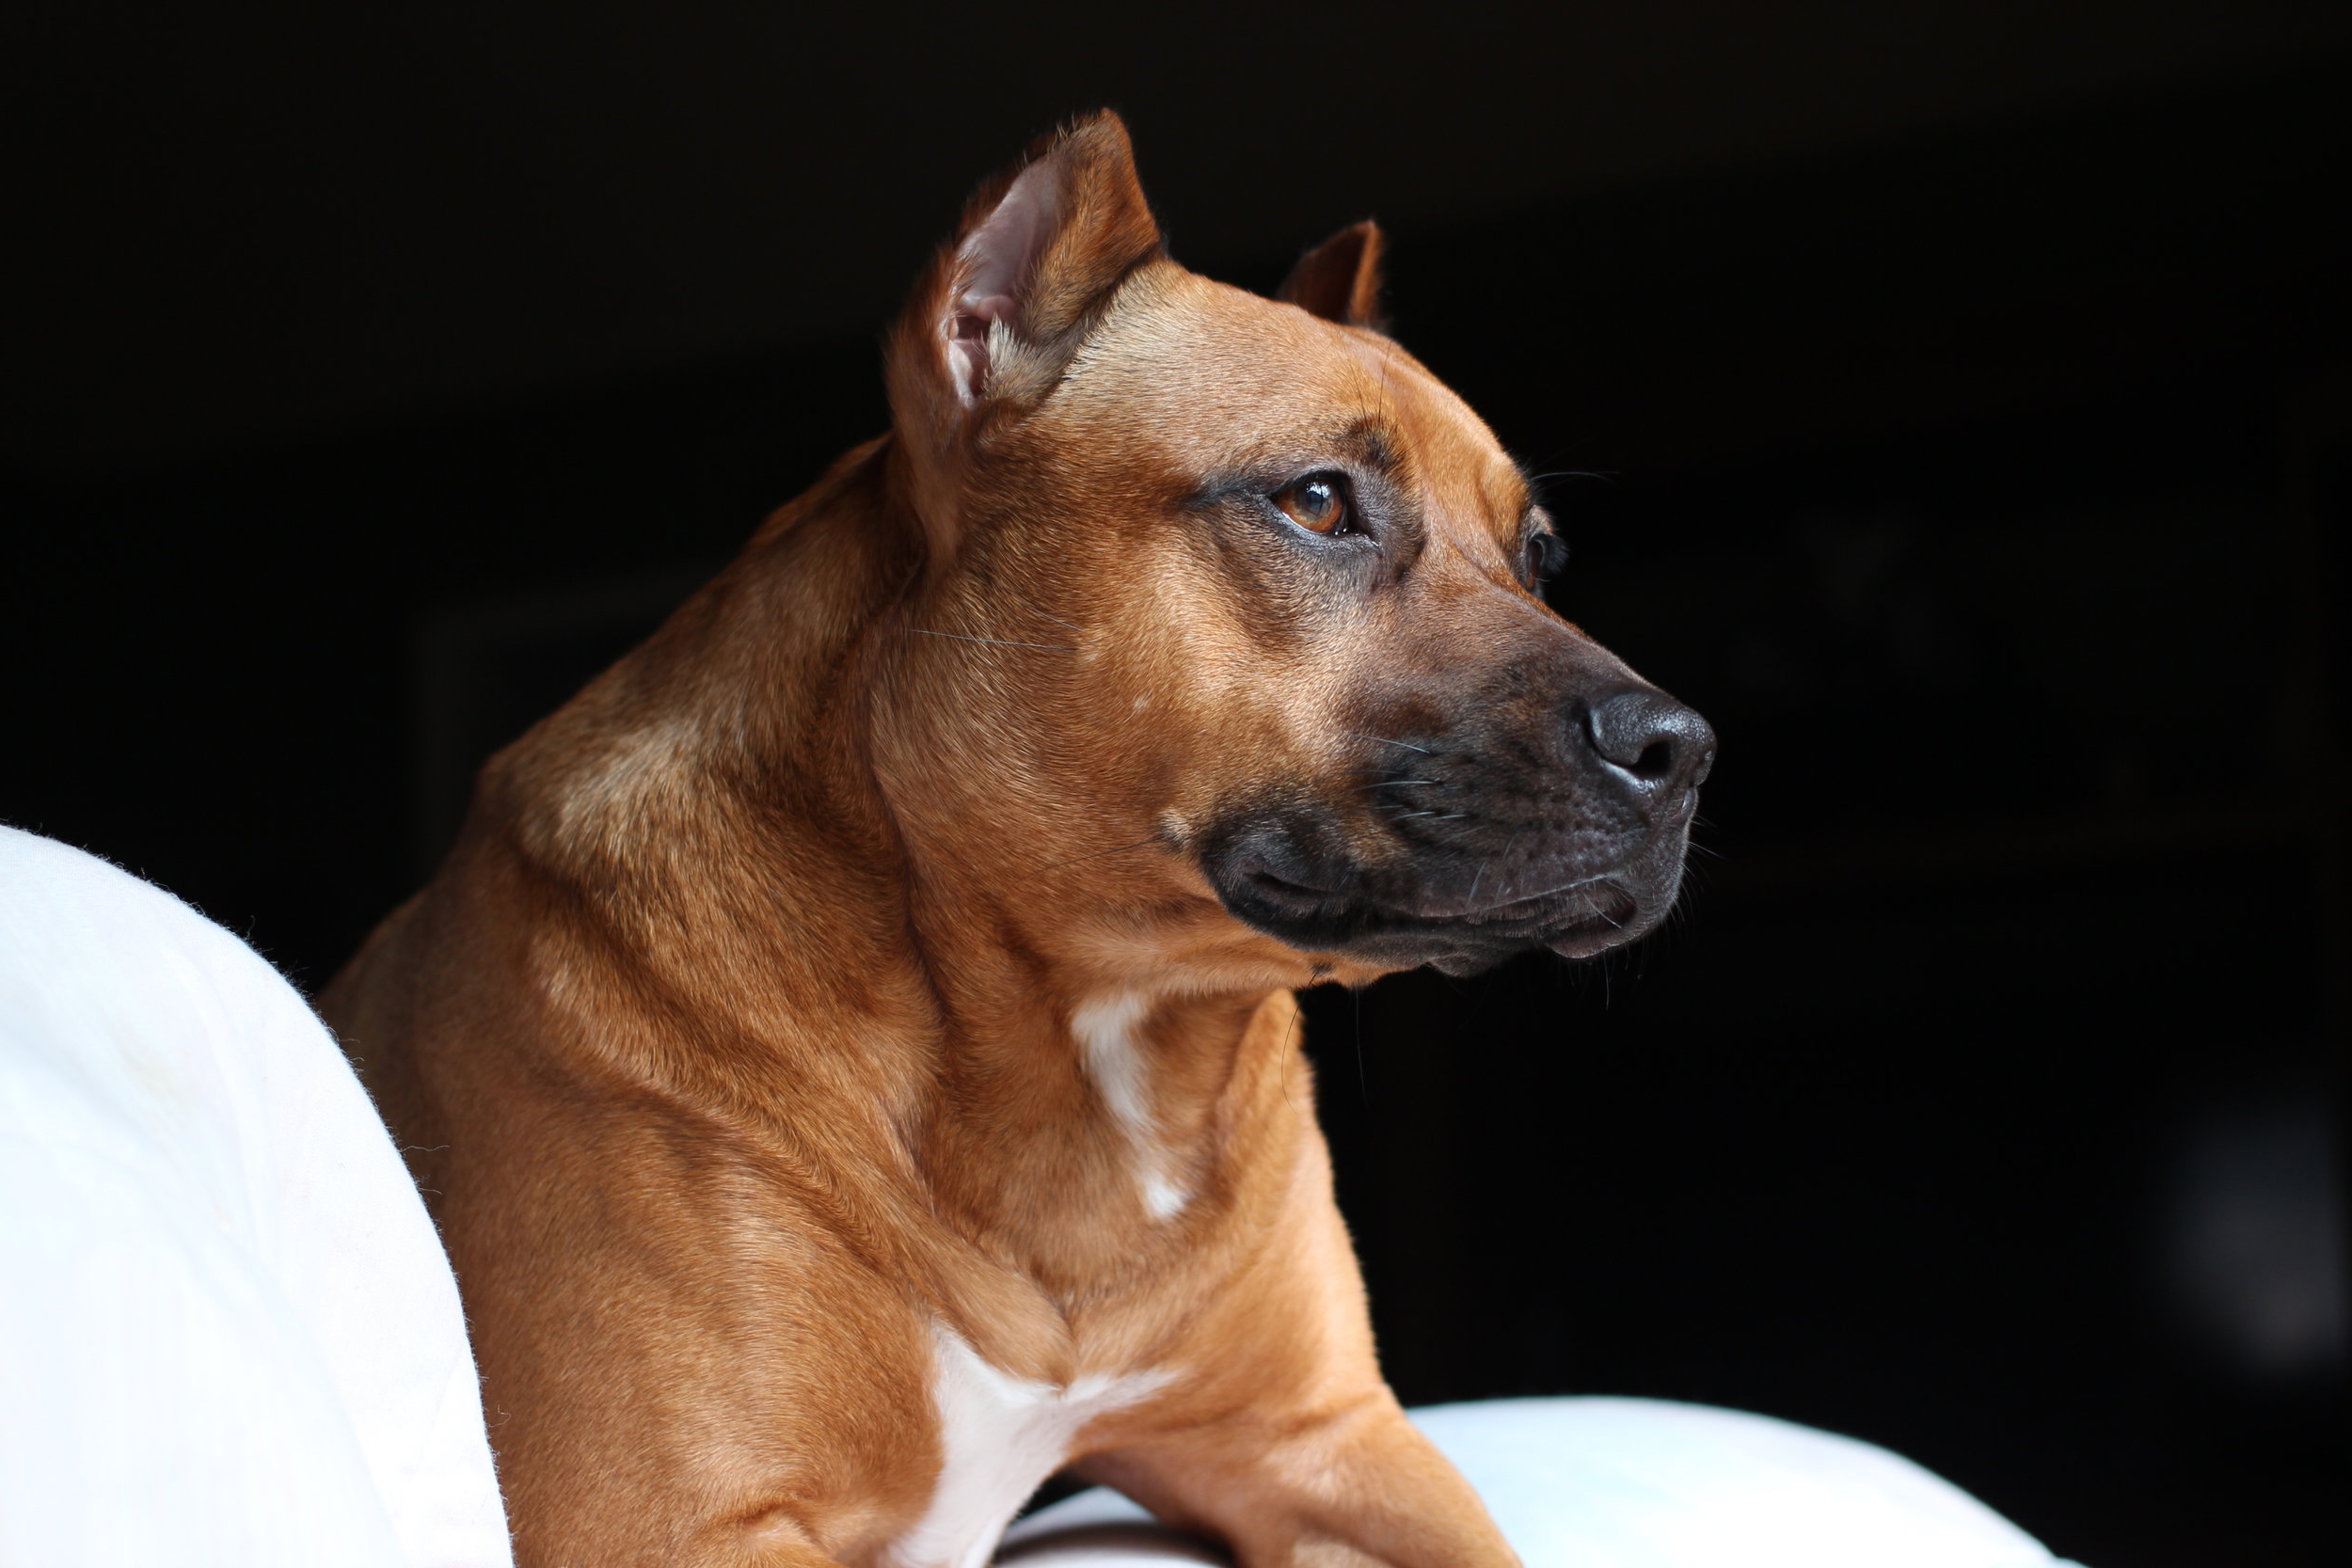 Dr. Lore Haug is a dog trainer and veterinarian- here is her dog Sunny the pitbull.